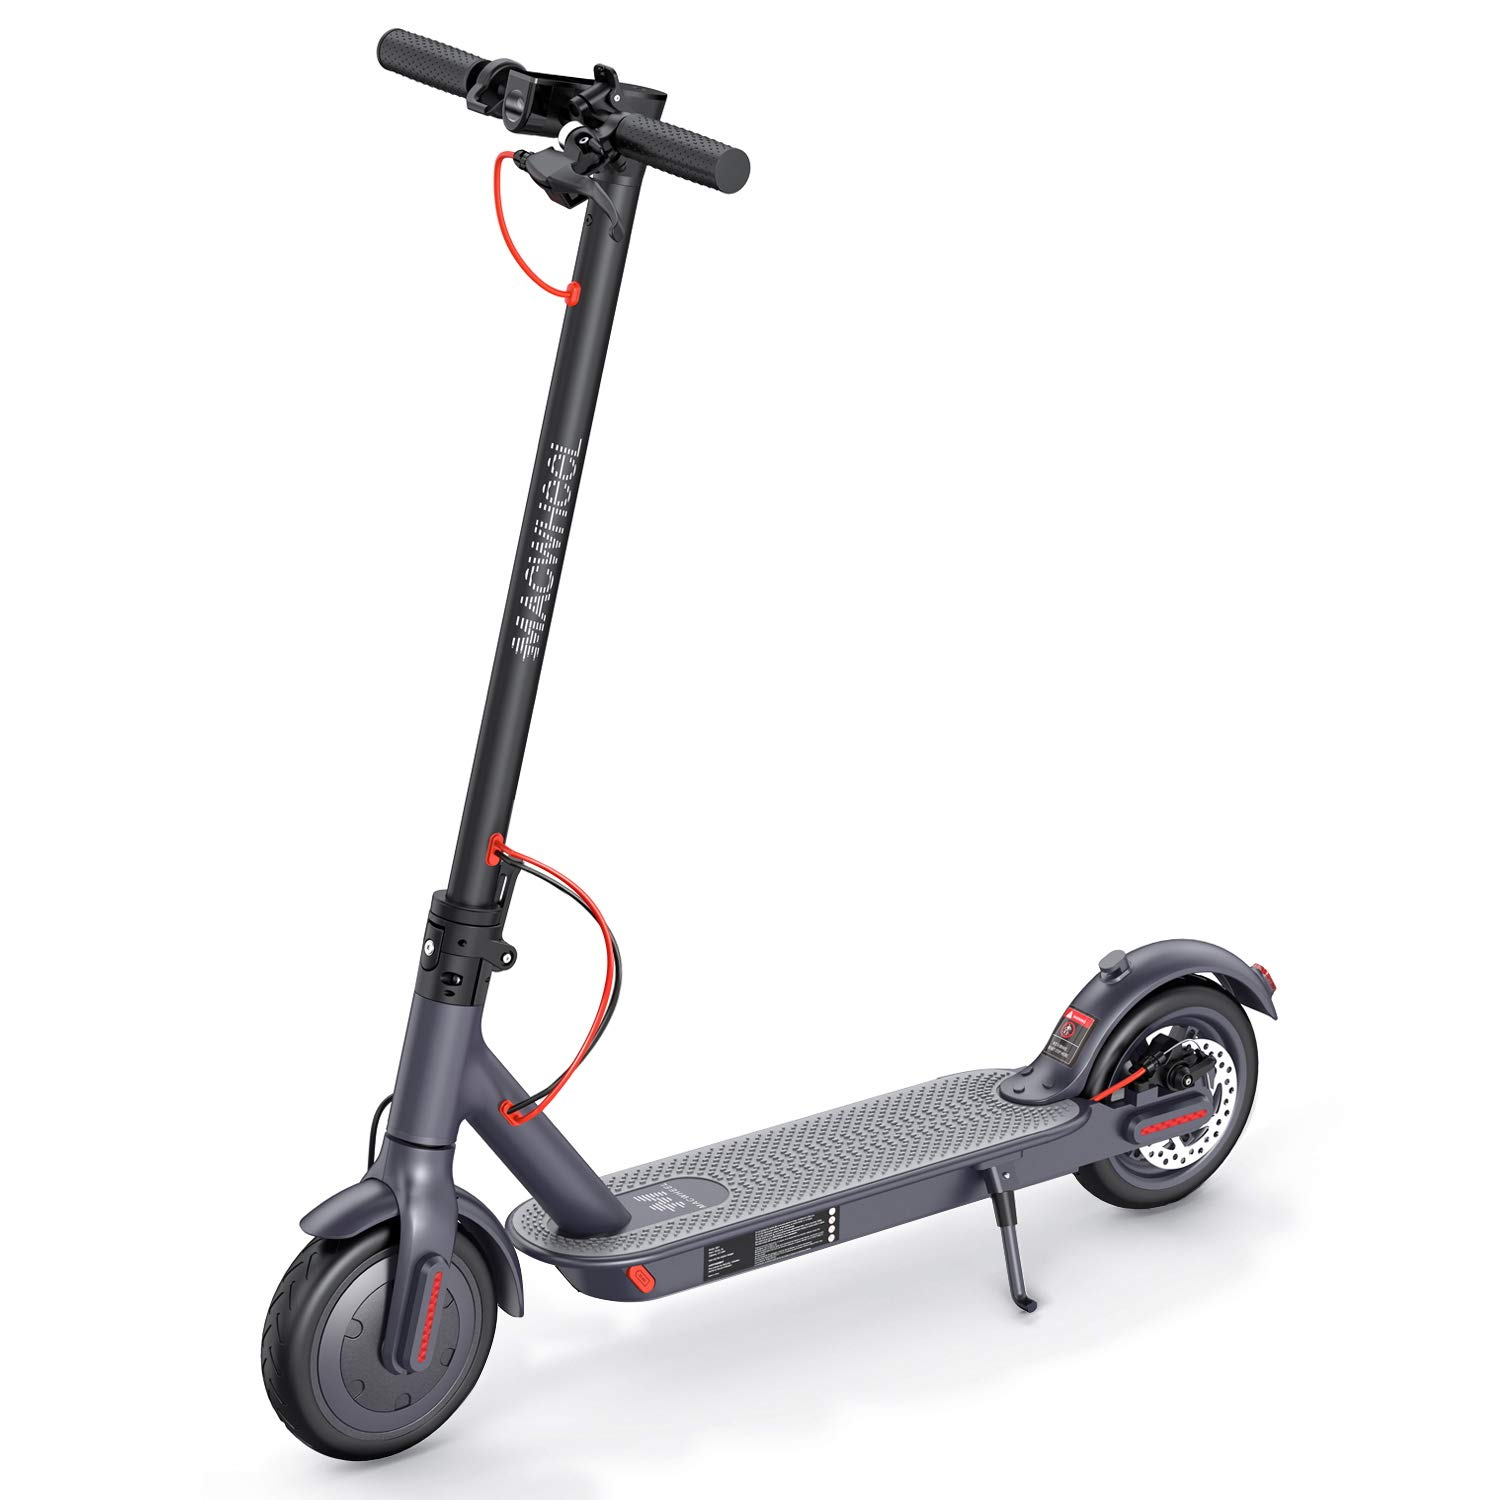 Macwheel Electric Scooter, Powerful 350W Motor, 18.6 Miles Long-Range Battery, Up to 15.6 MPH, 8.5'' Non-Pneumatic Inner Foamed Rubber Tires, Portable Folding Design Commuting Motorized Scooter (MX1) by MACWHEEL